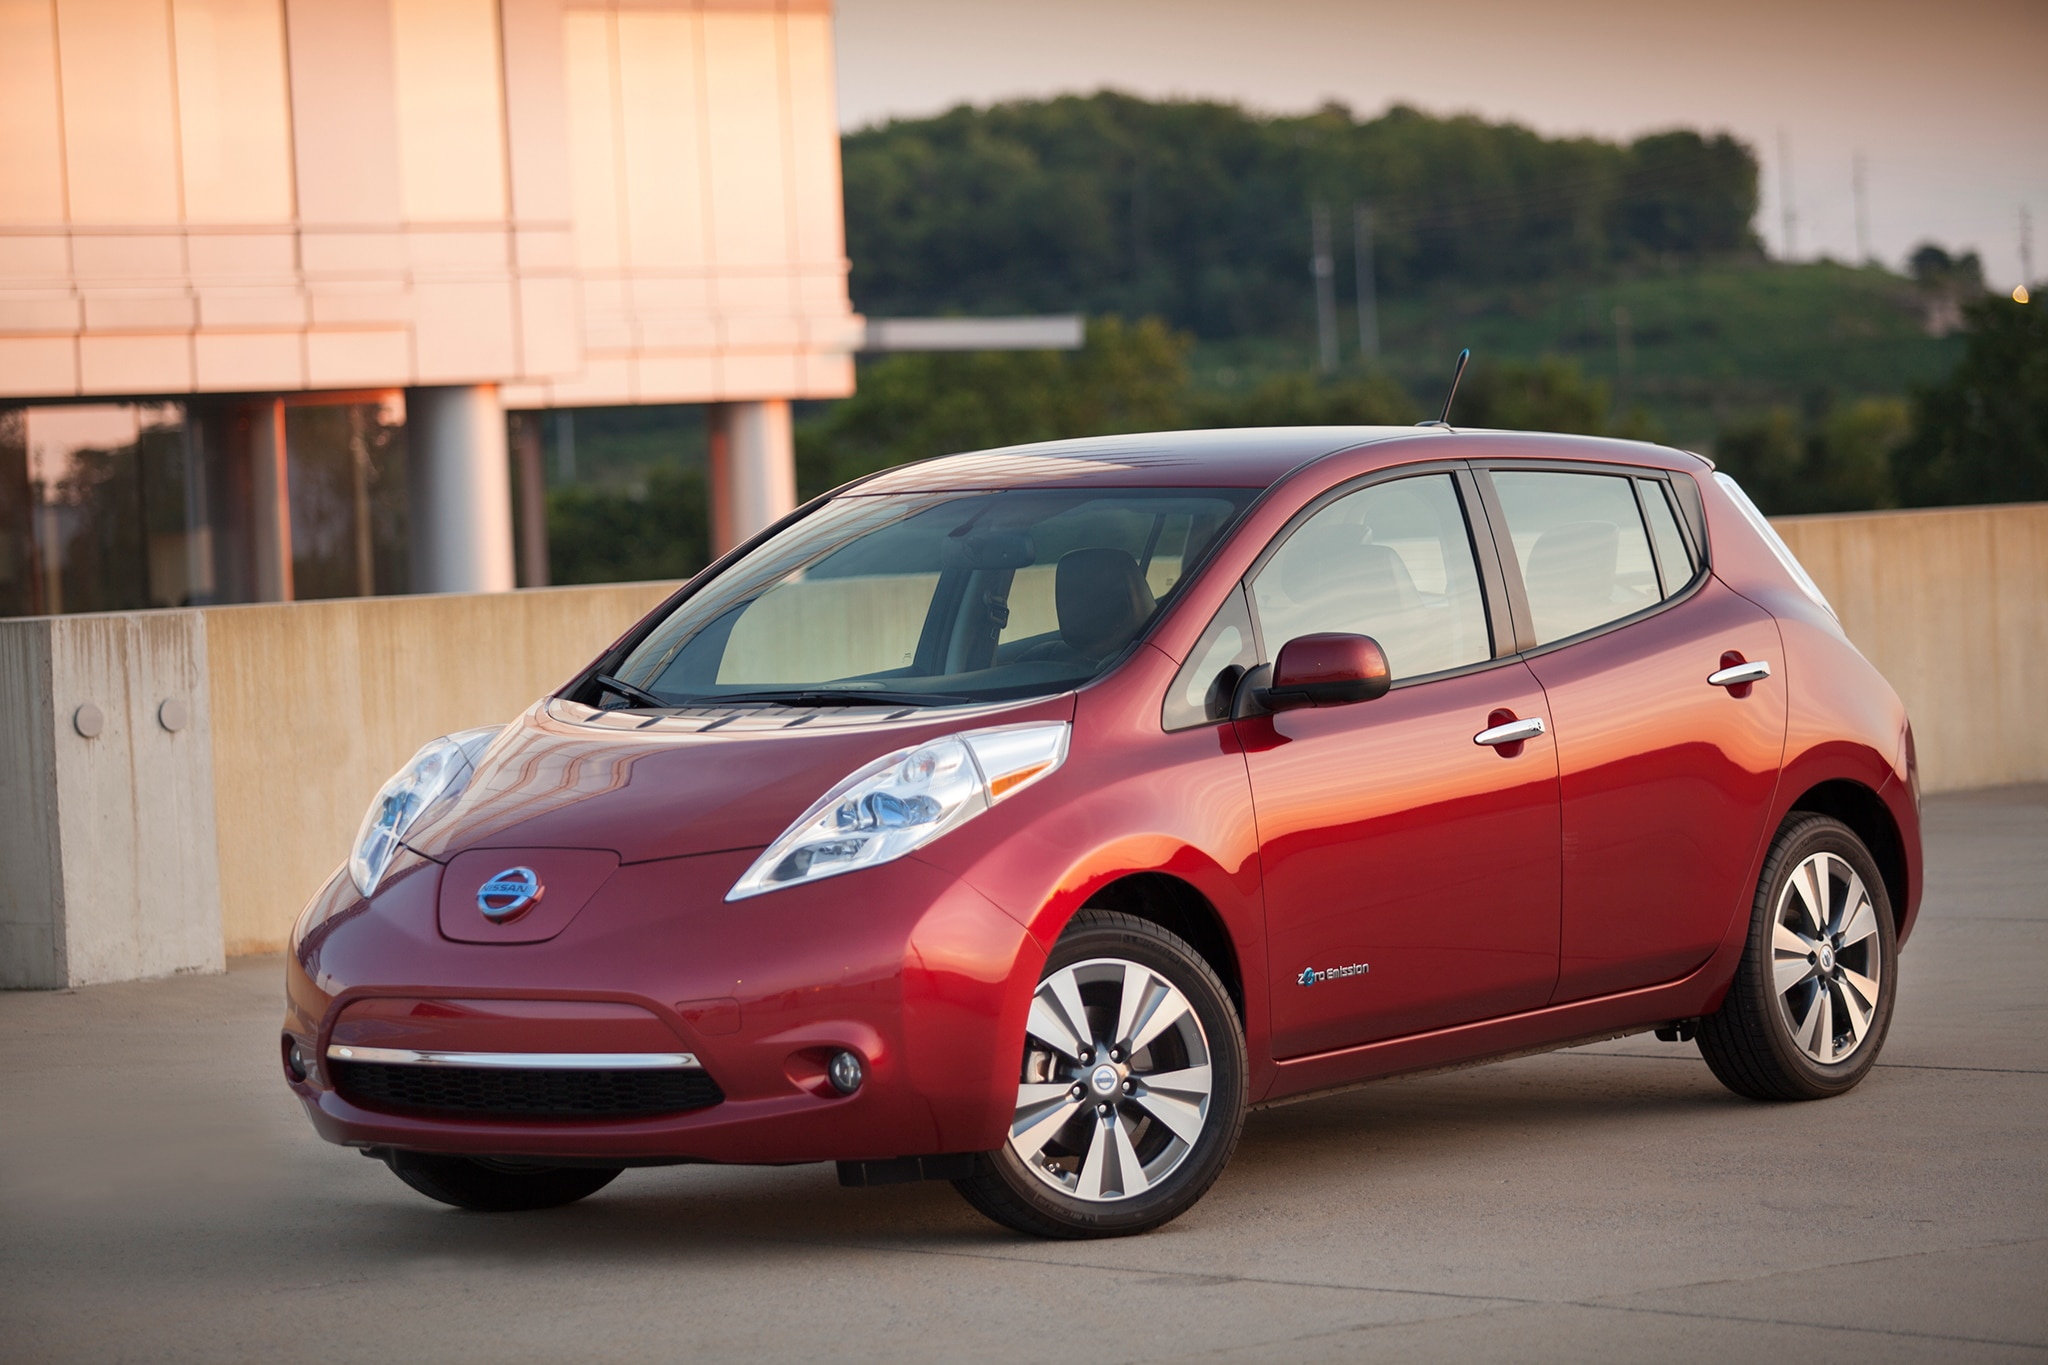 2014 Nissan LEAF Three Quarters View2